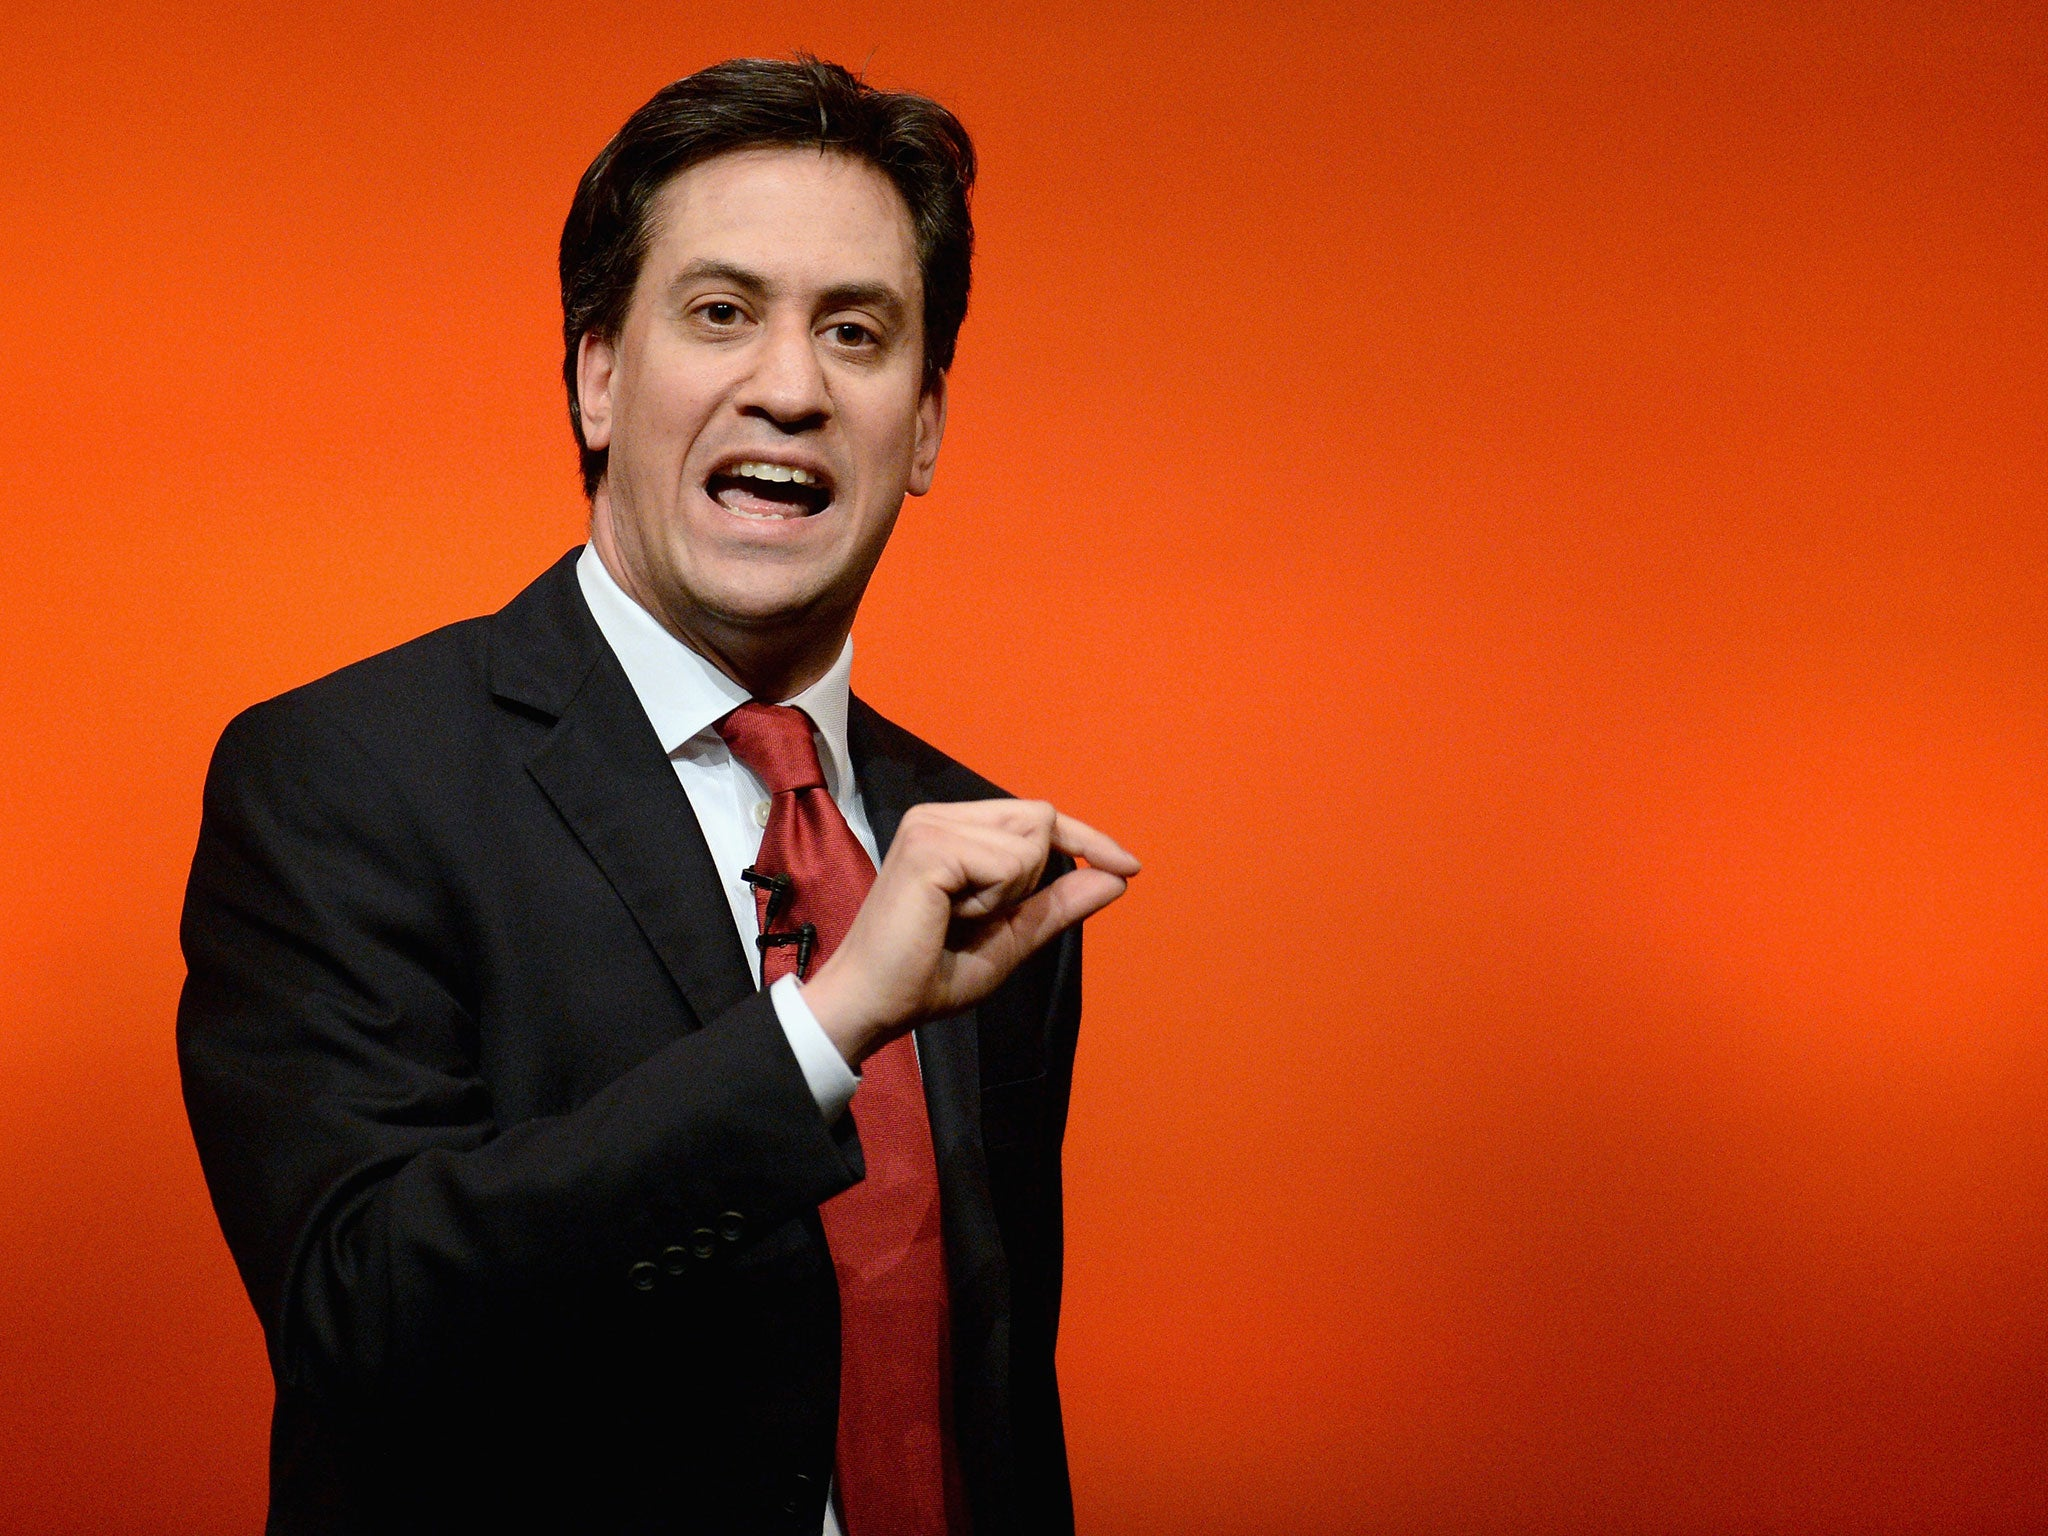 Ed Miliband makes comeback to frontline politics as Keir Starmer unveils Labour shadow cabinet